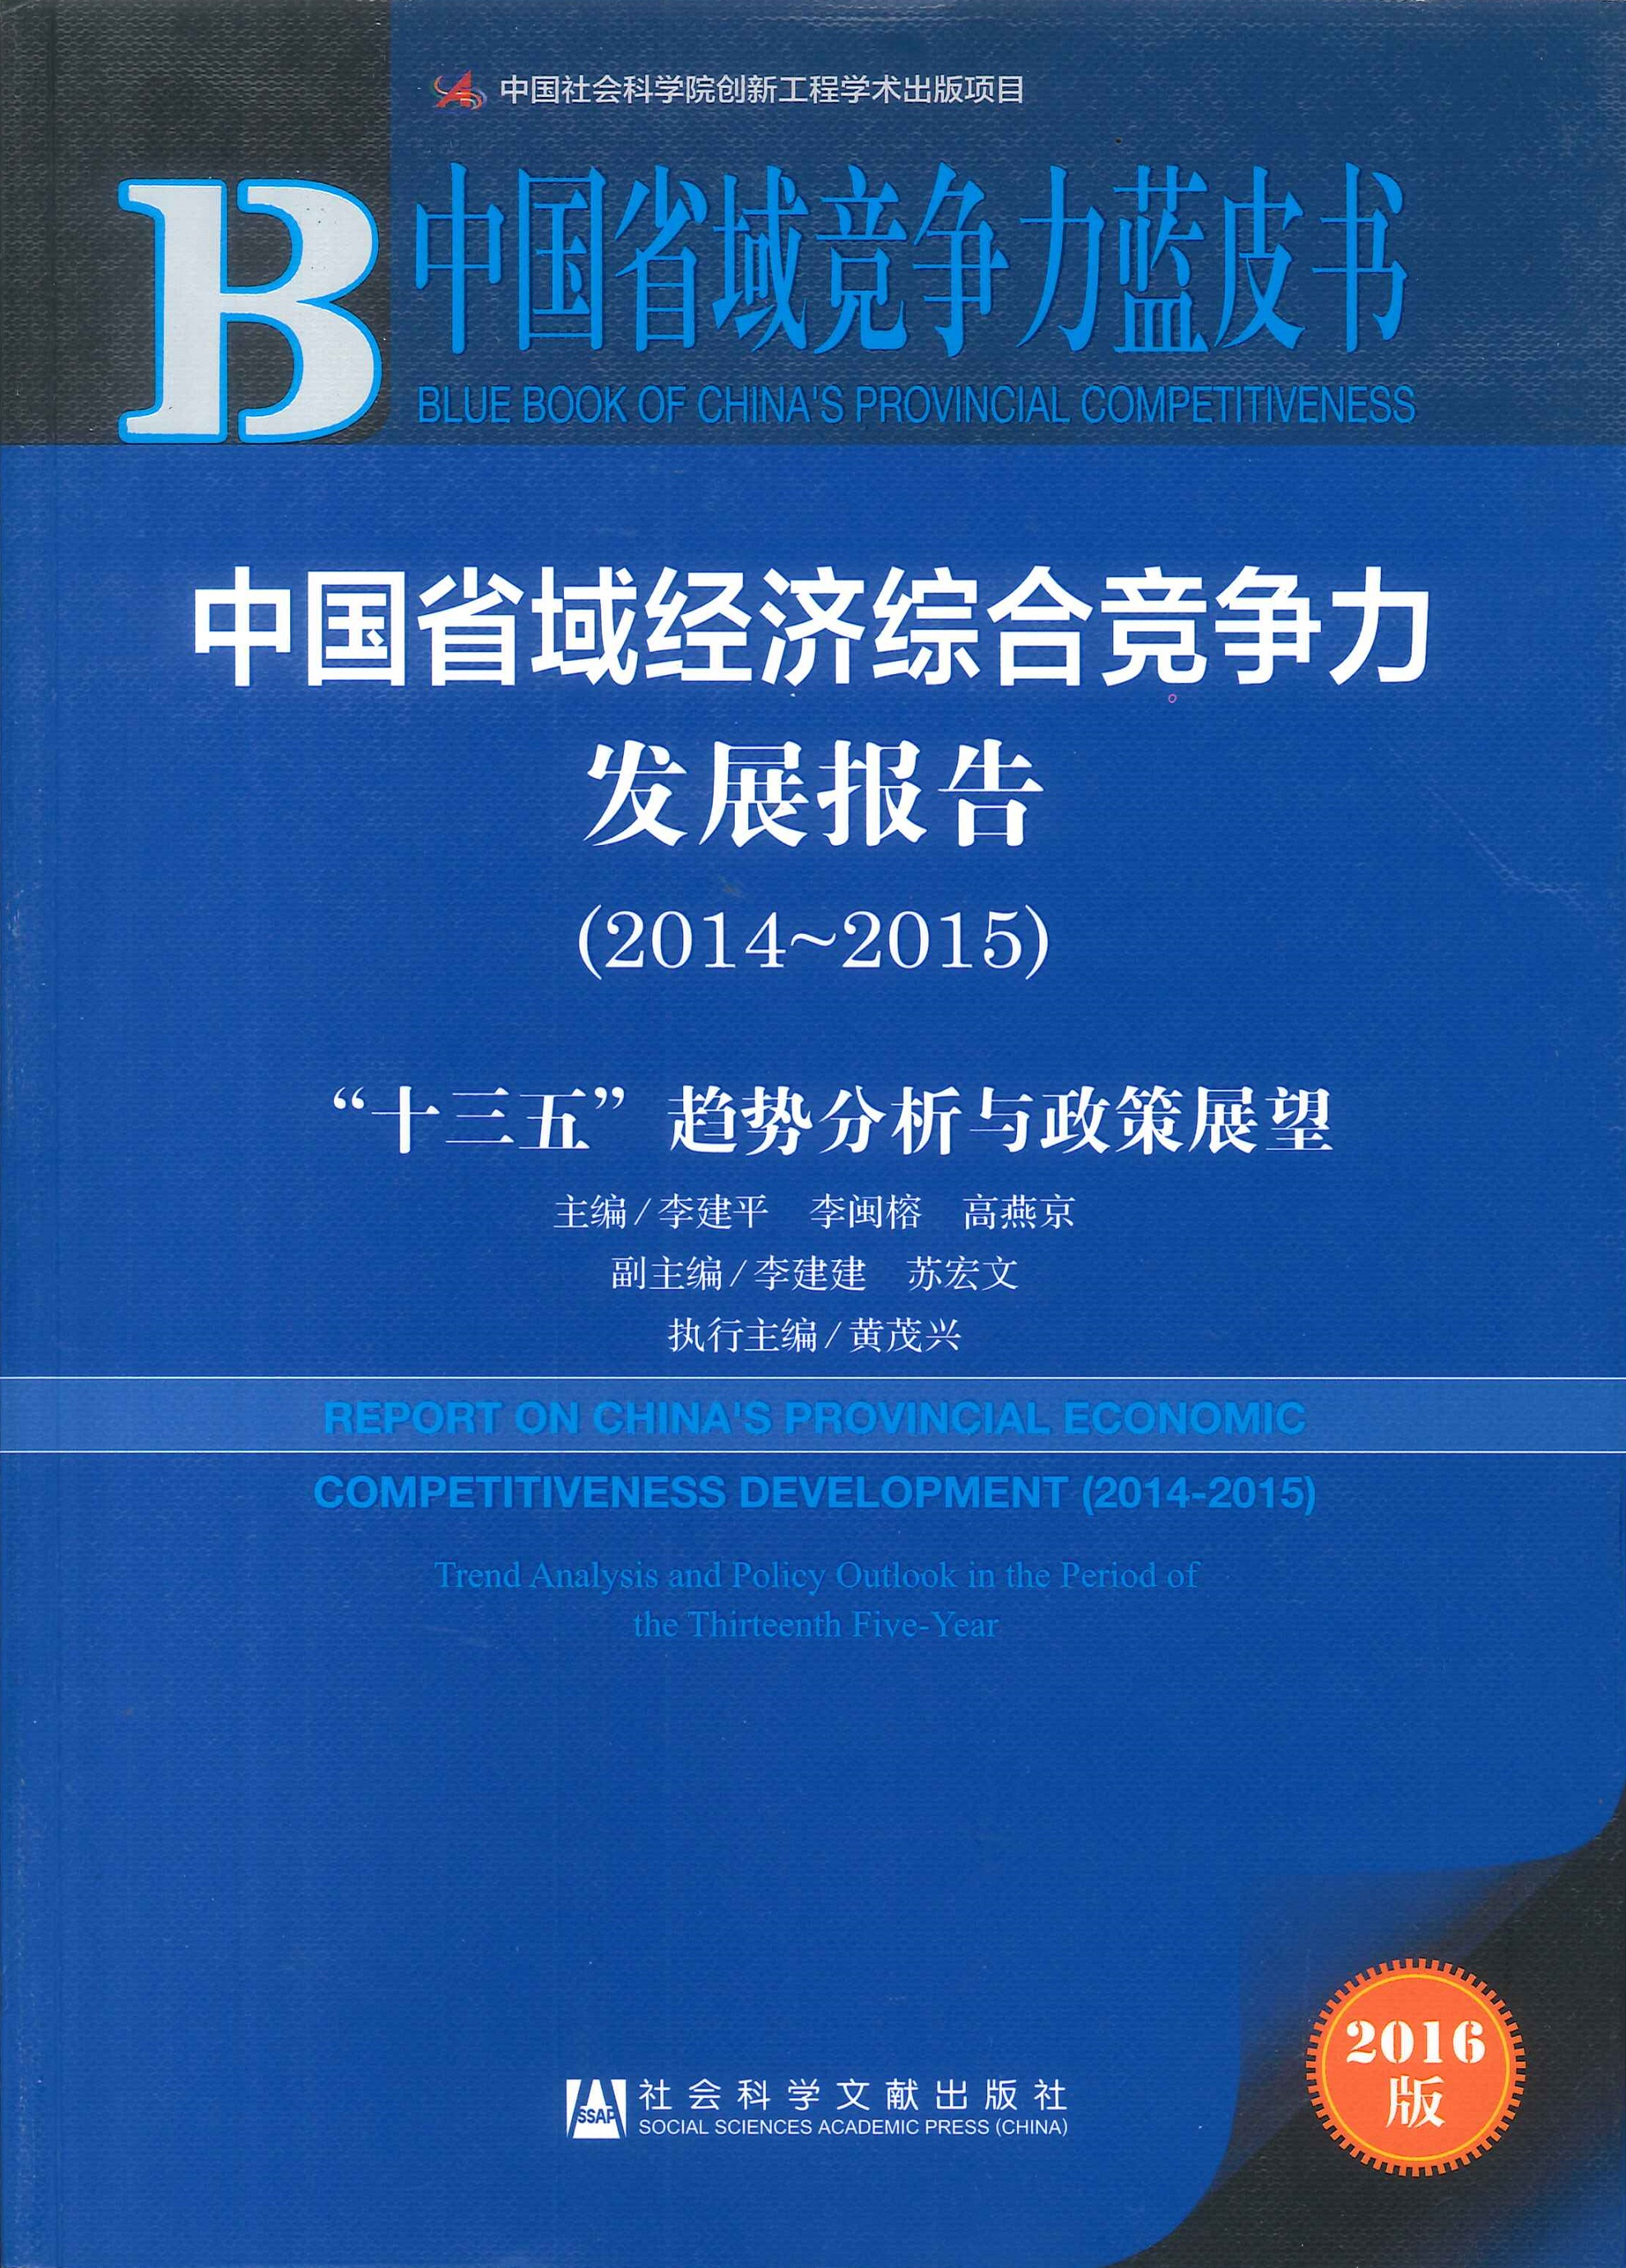 中国省域经济综合竞争力发展报告=Annual report on overall competitiveness of China